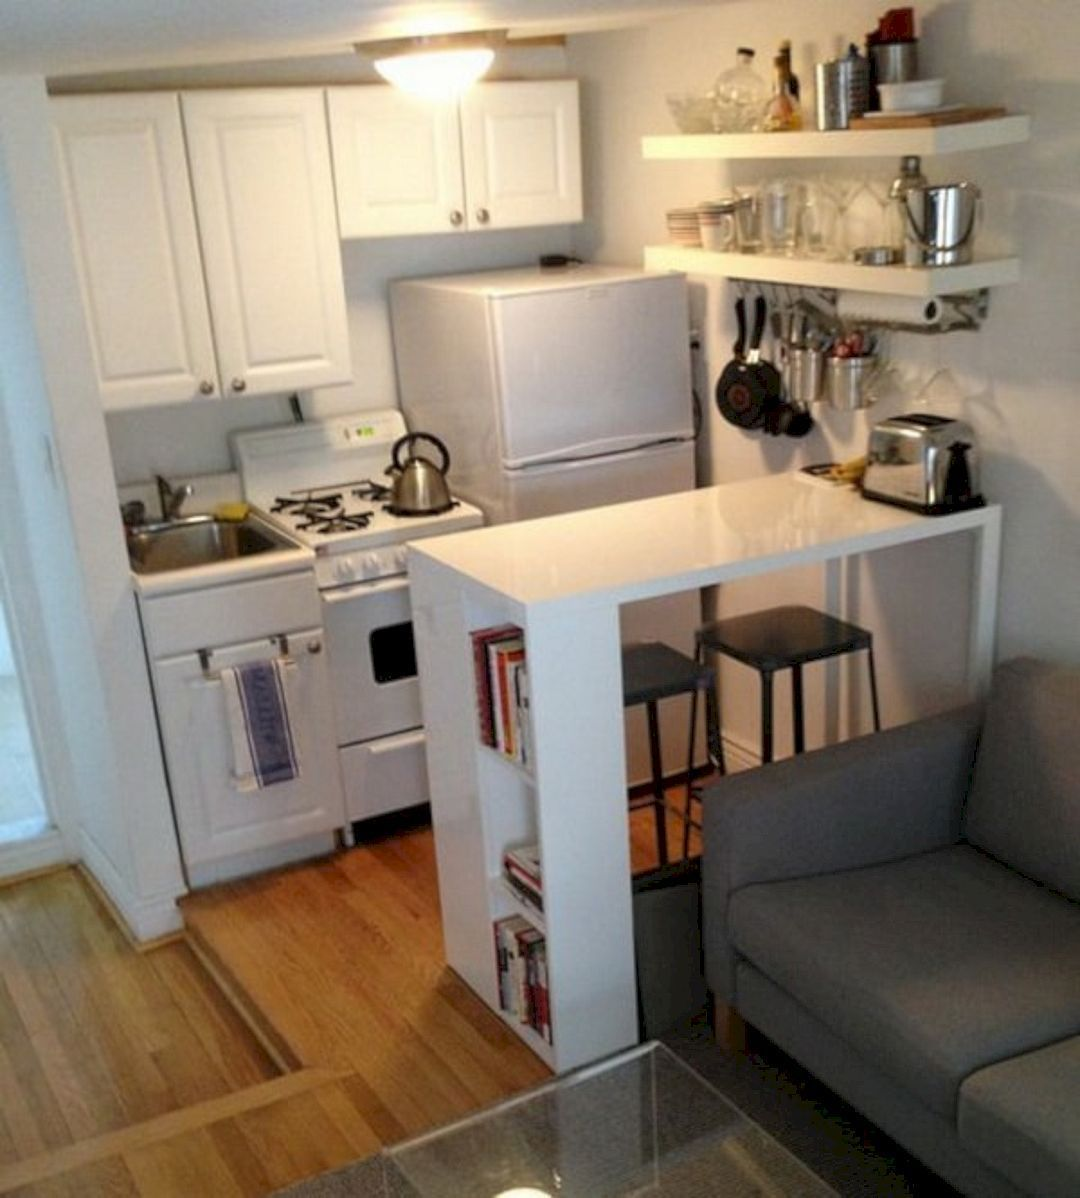 Inspiring Decor Ideas For Small Apartments Creating An Illusion Of Space Small Apartment Kitchen Kitchen Remodel Small Kitchen Design Small